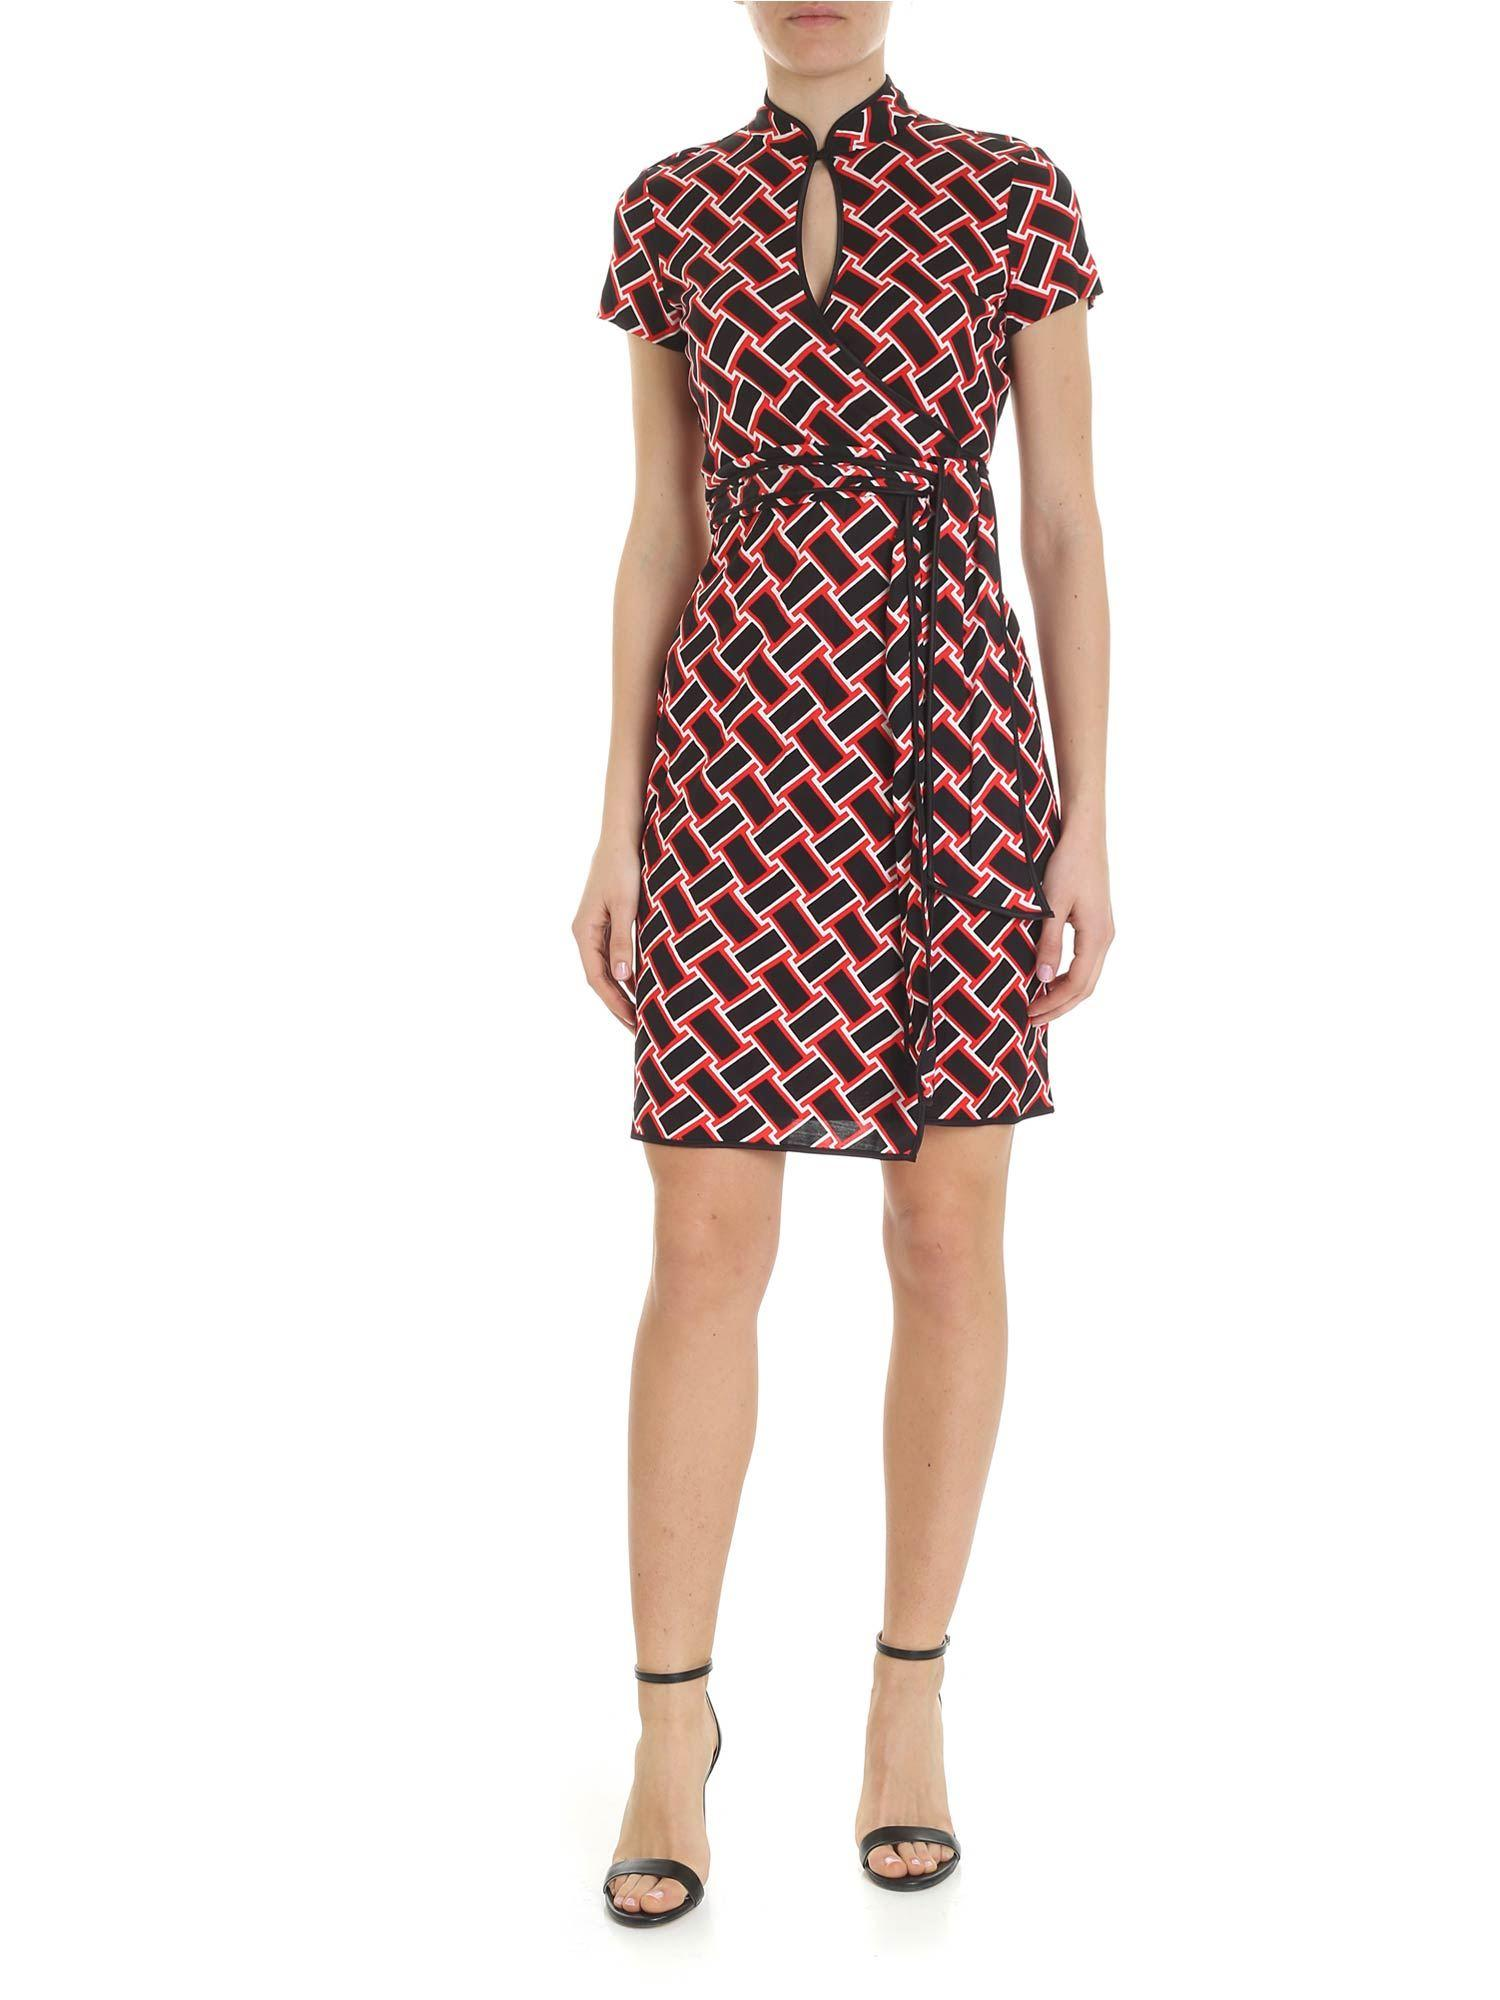 b2dbc1f298 Lyst - Diane von Furstenberg Jovie Dress In Black And Red in Black